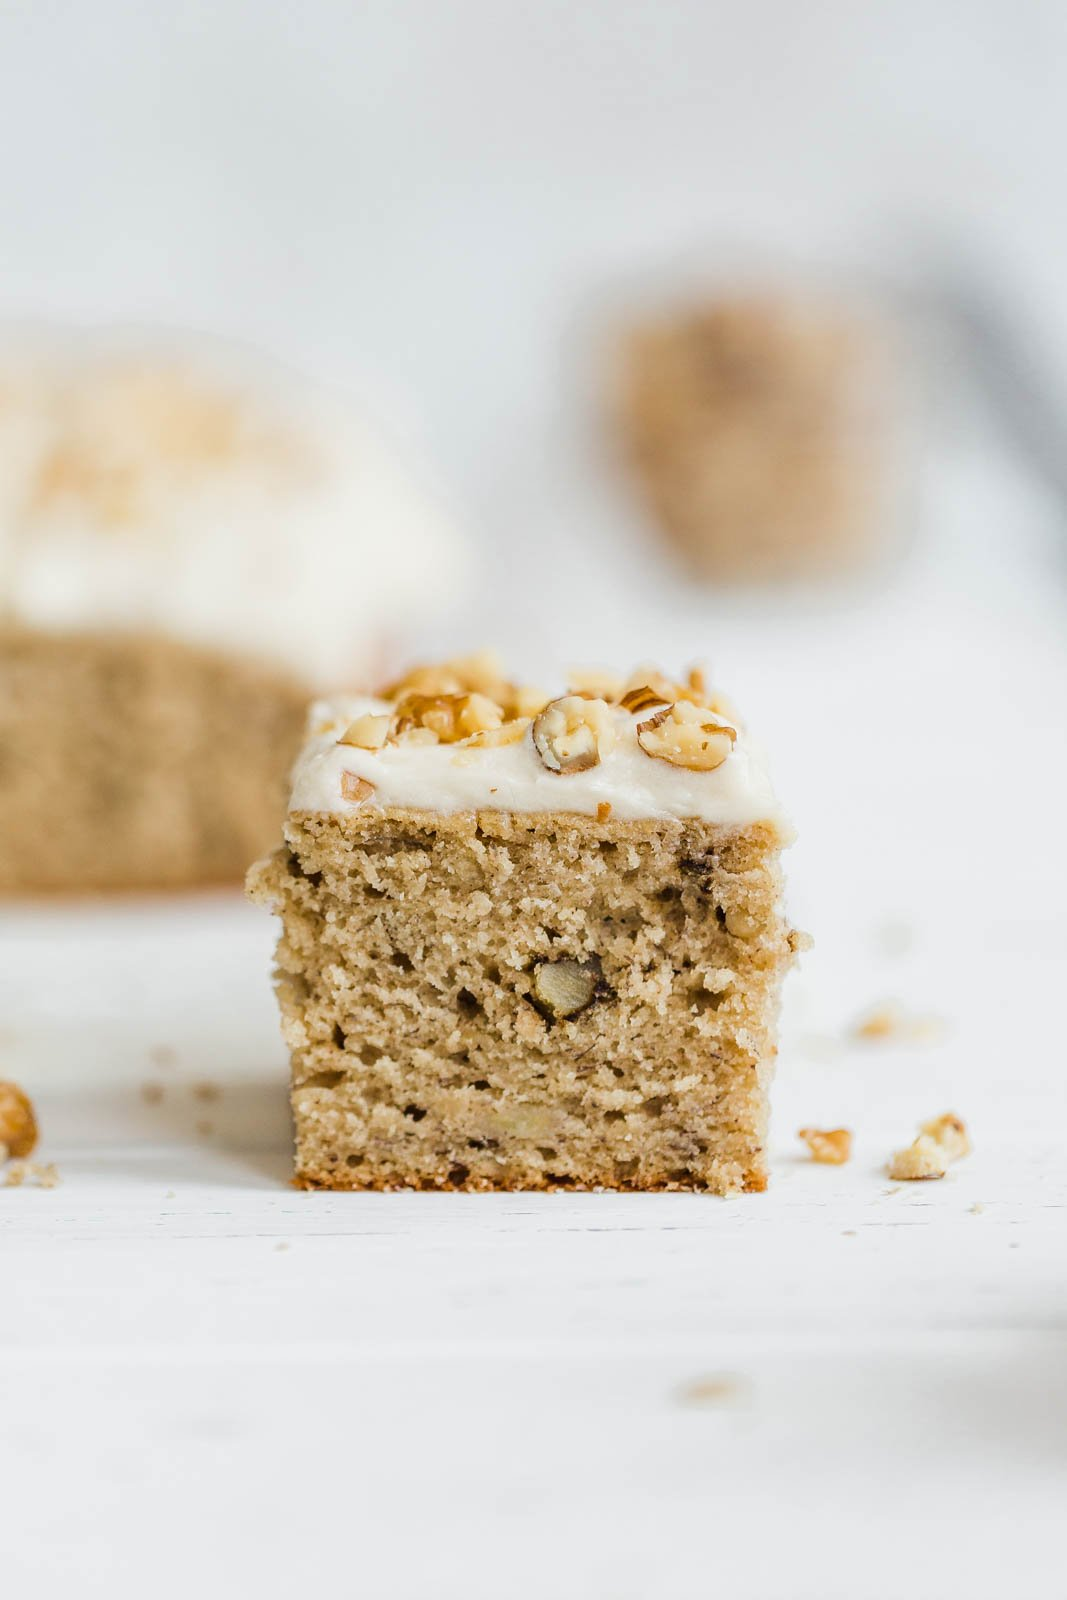 Banana Walnut Sheet cake